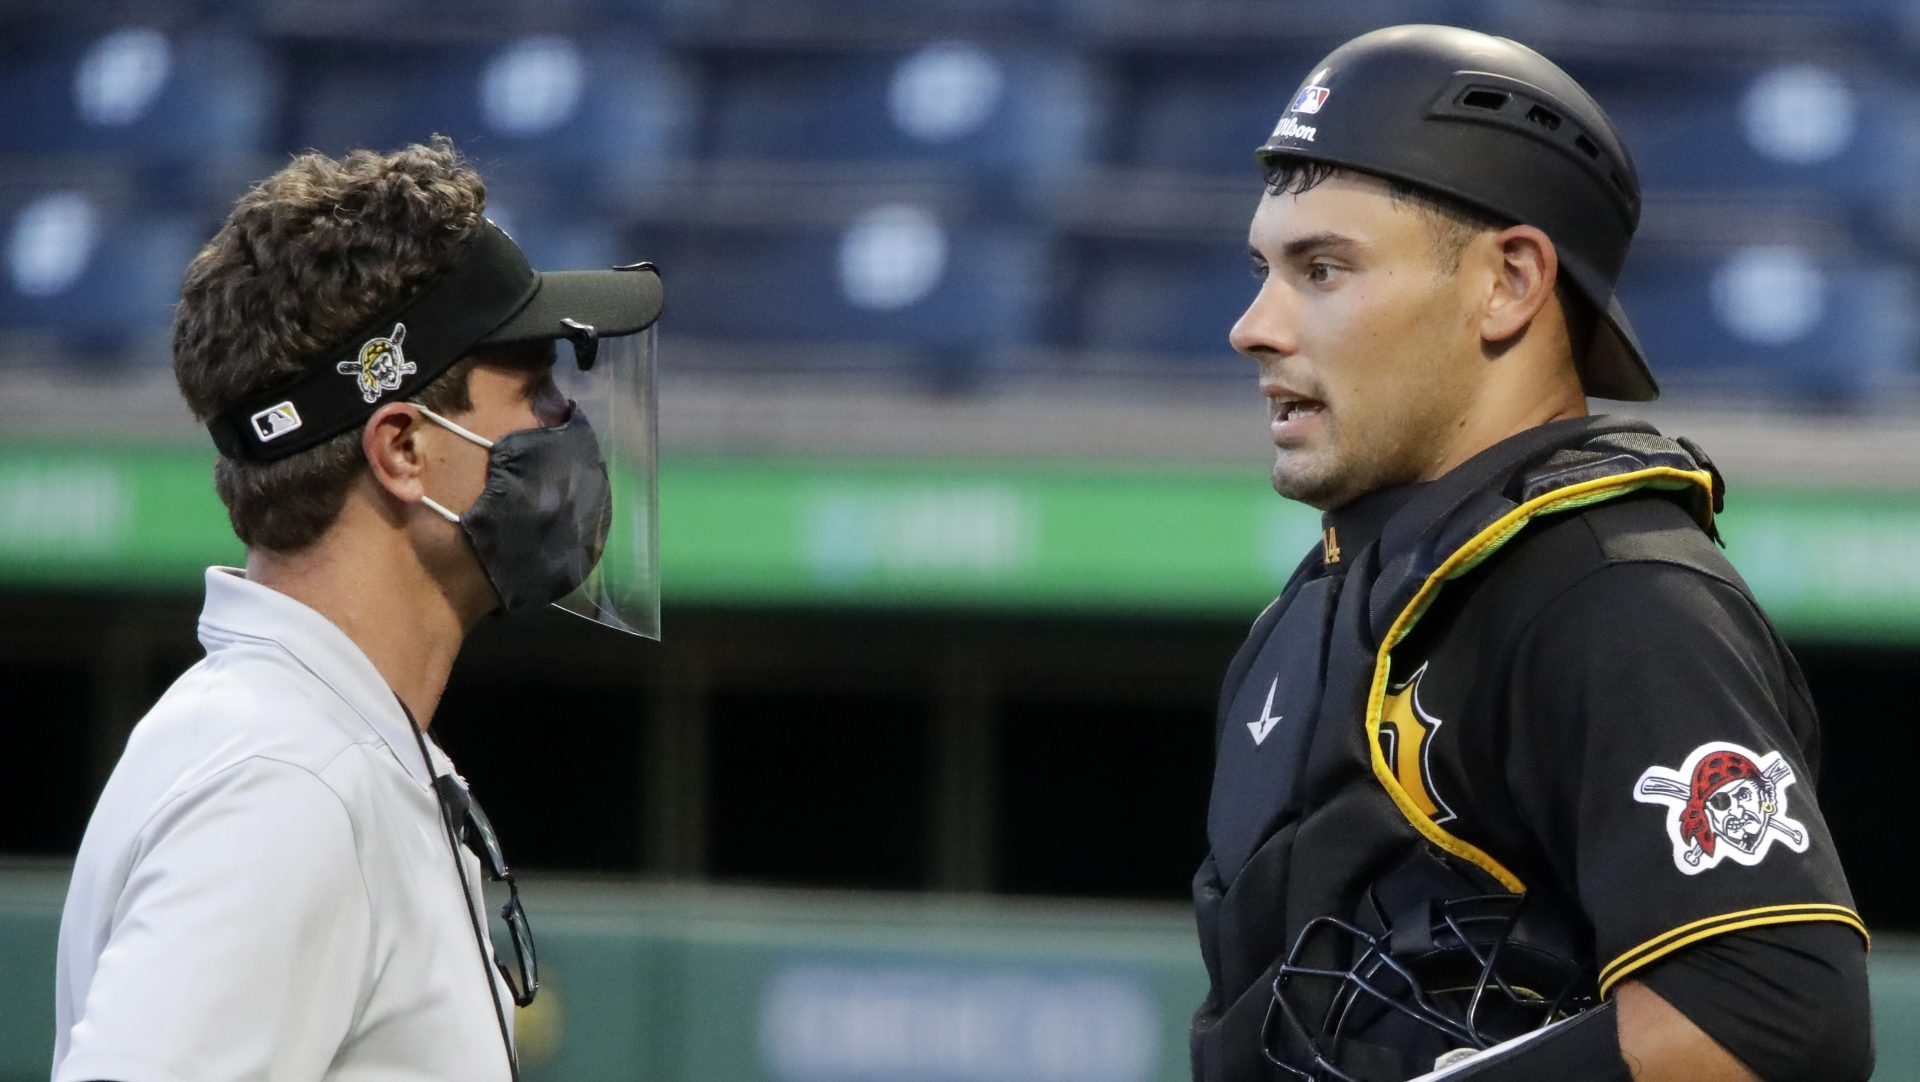 Pittsburgh Pirates catcher Luke Maile, right, talks with a trainer during an intrasquad game during the team's baseball practice at PNC Park in Pittsburgh, Wednesday, July 15, 2020.